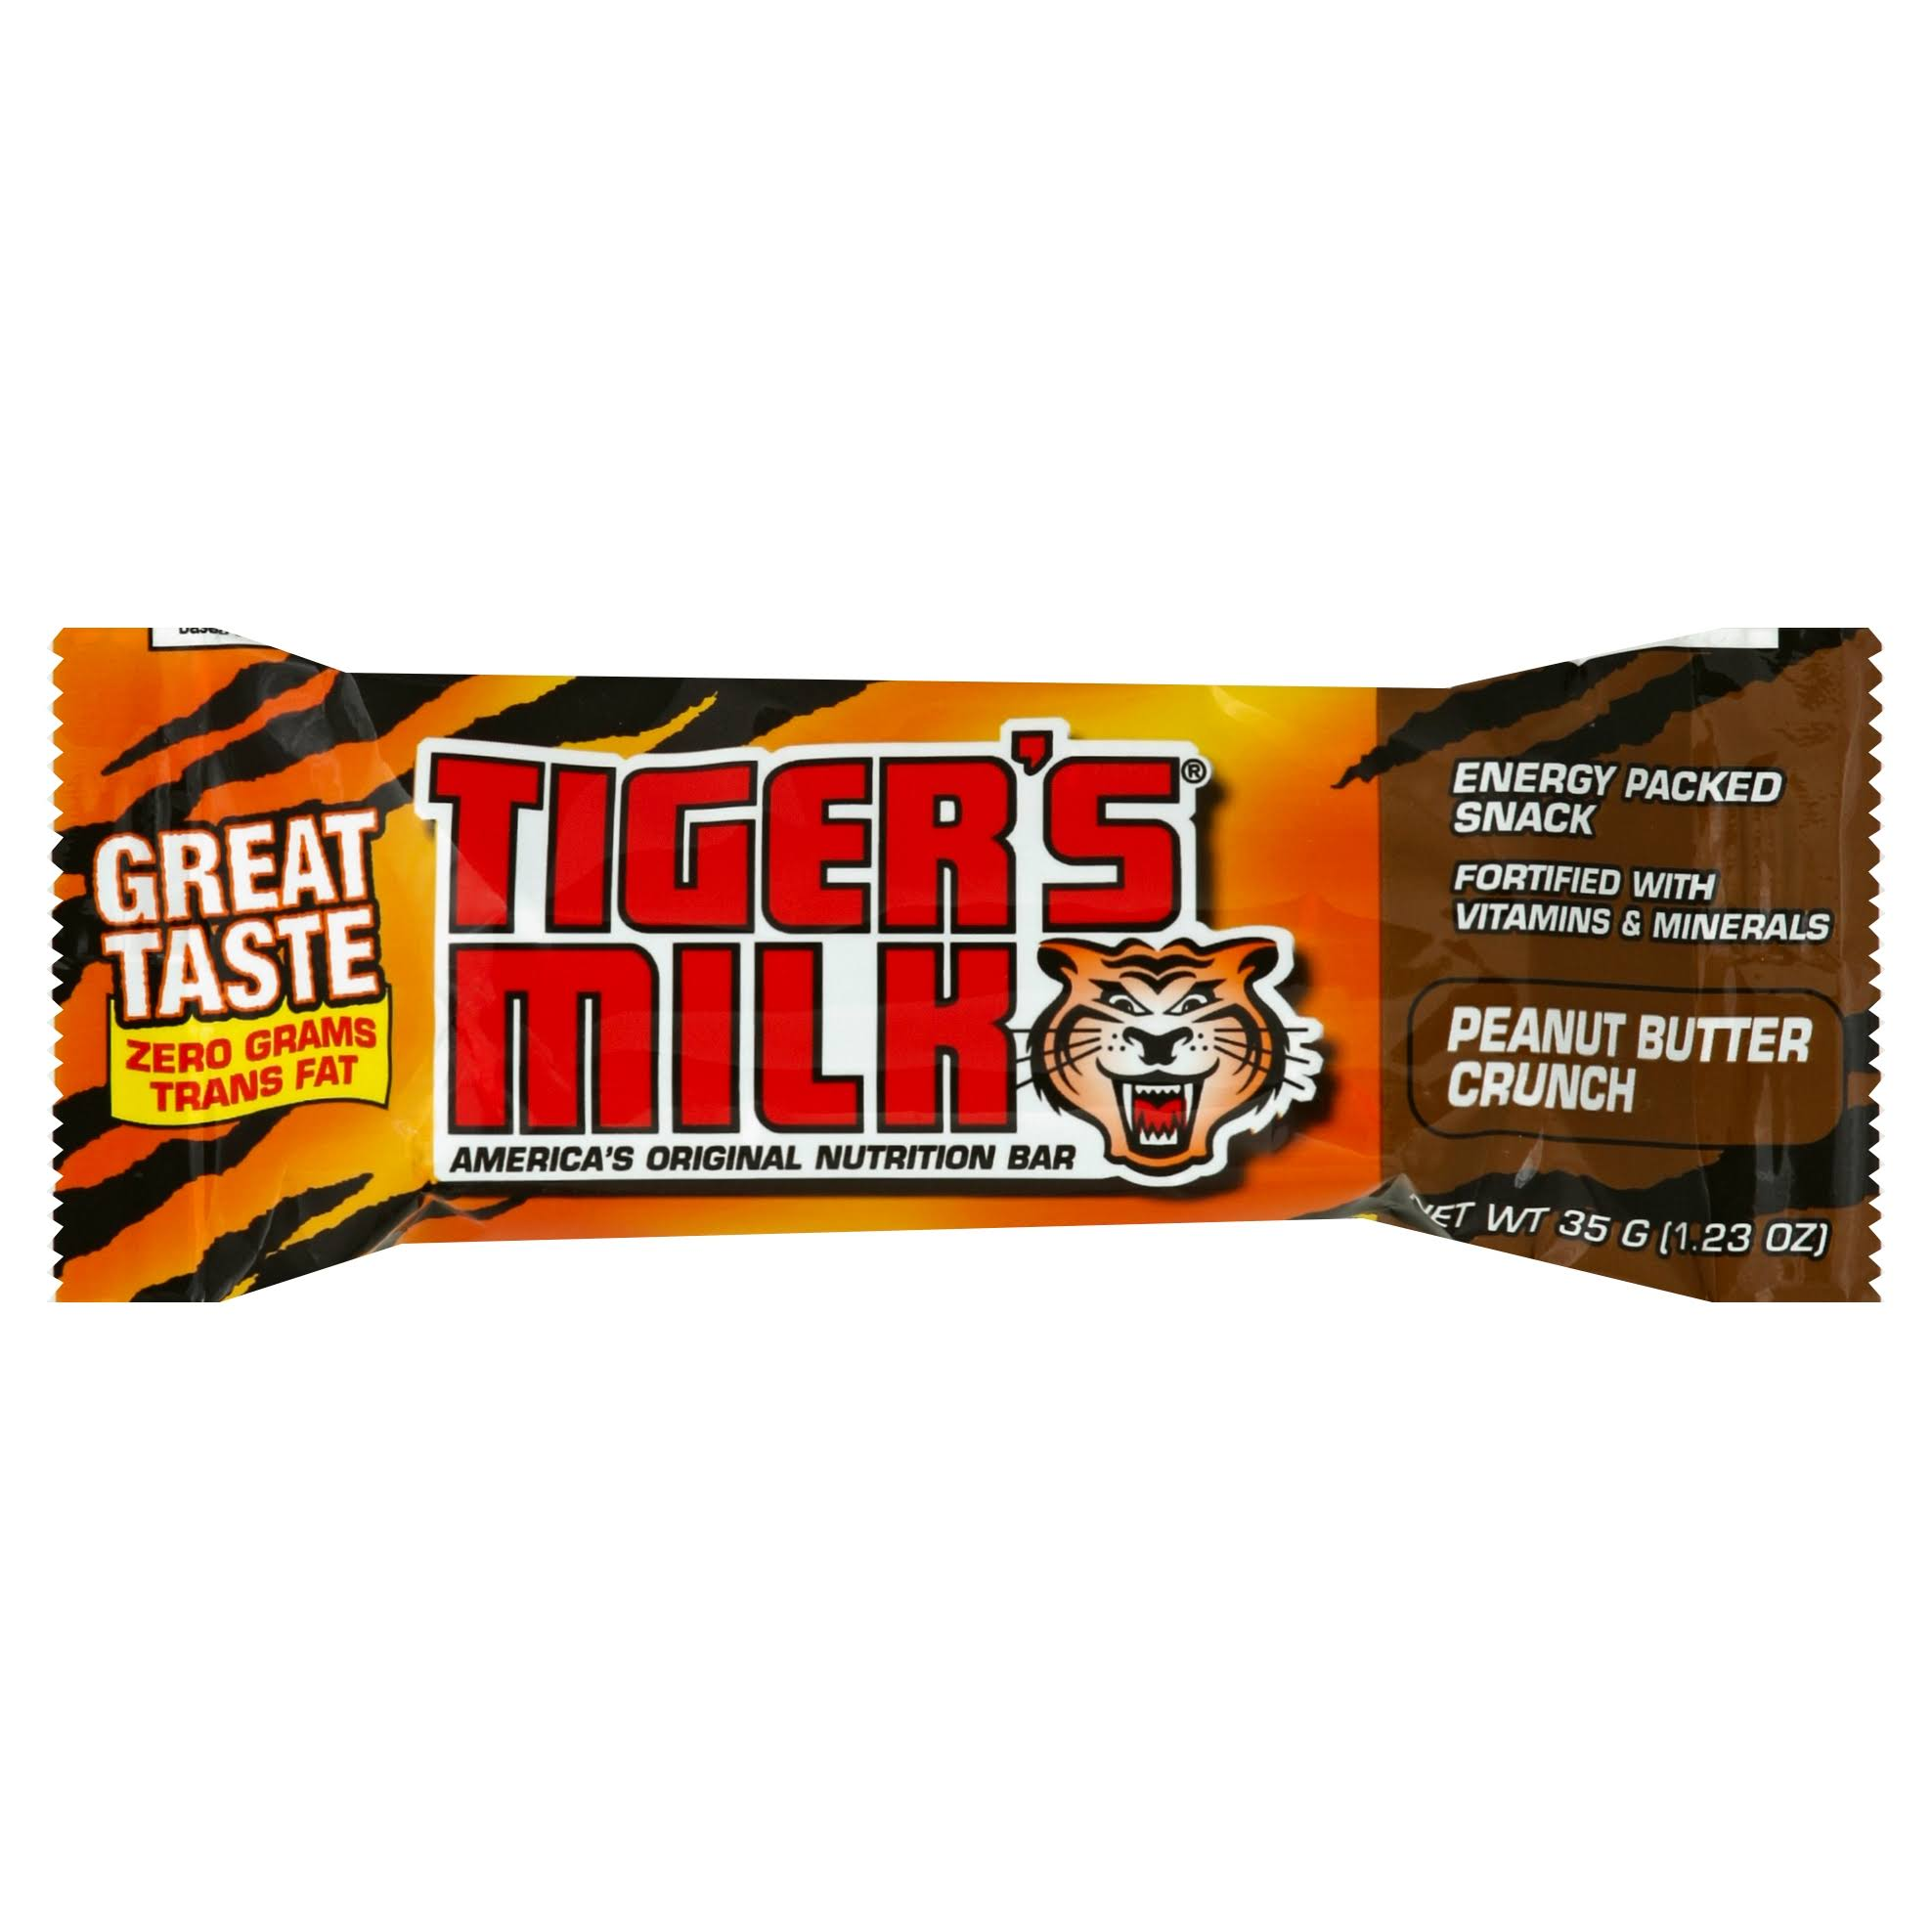 Tigers Chocolate Milk Peanut Butter Crunch Bar